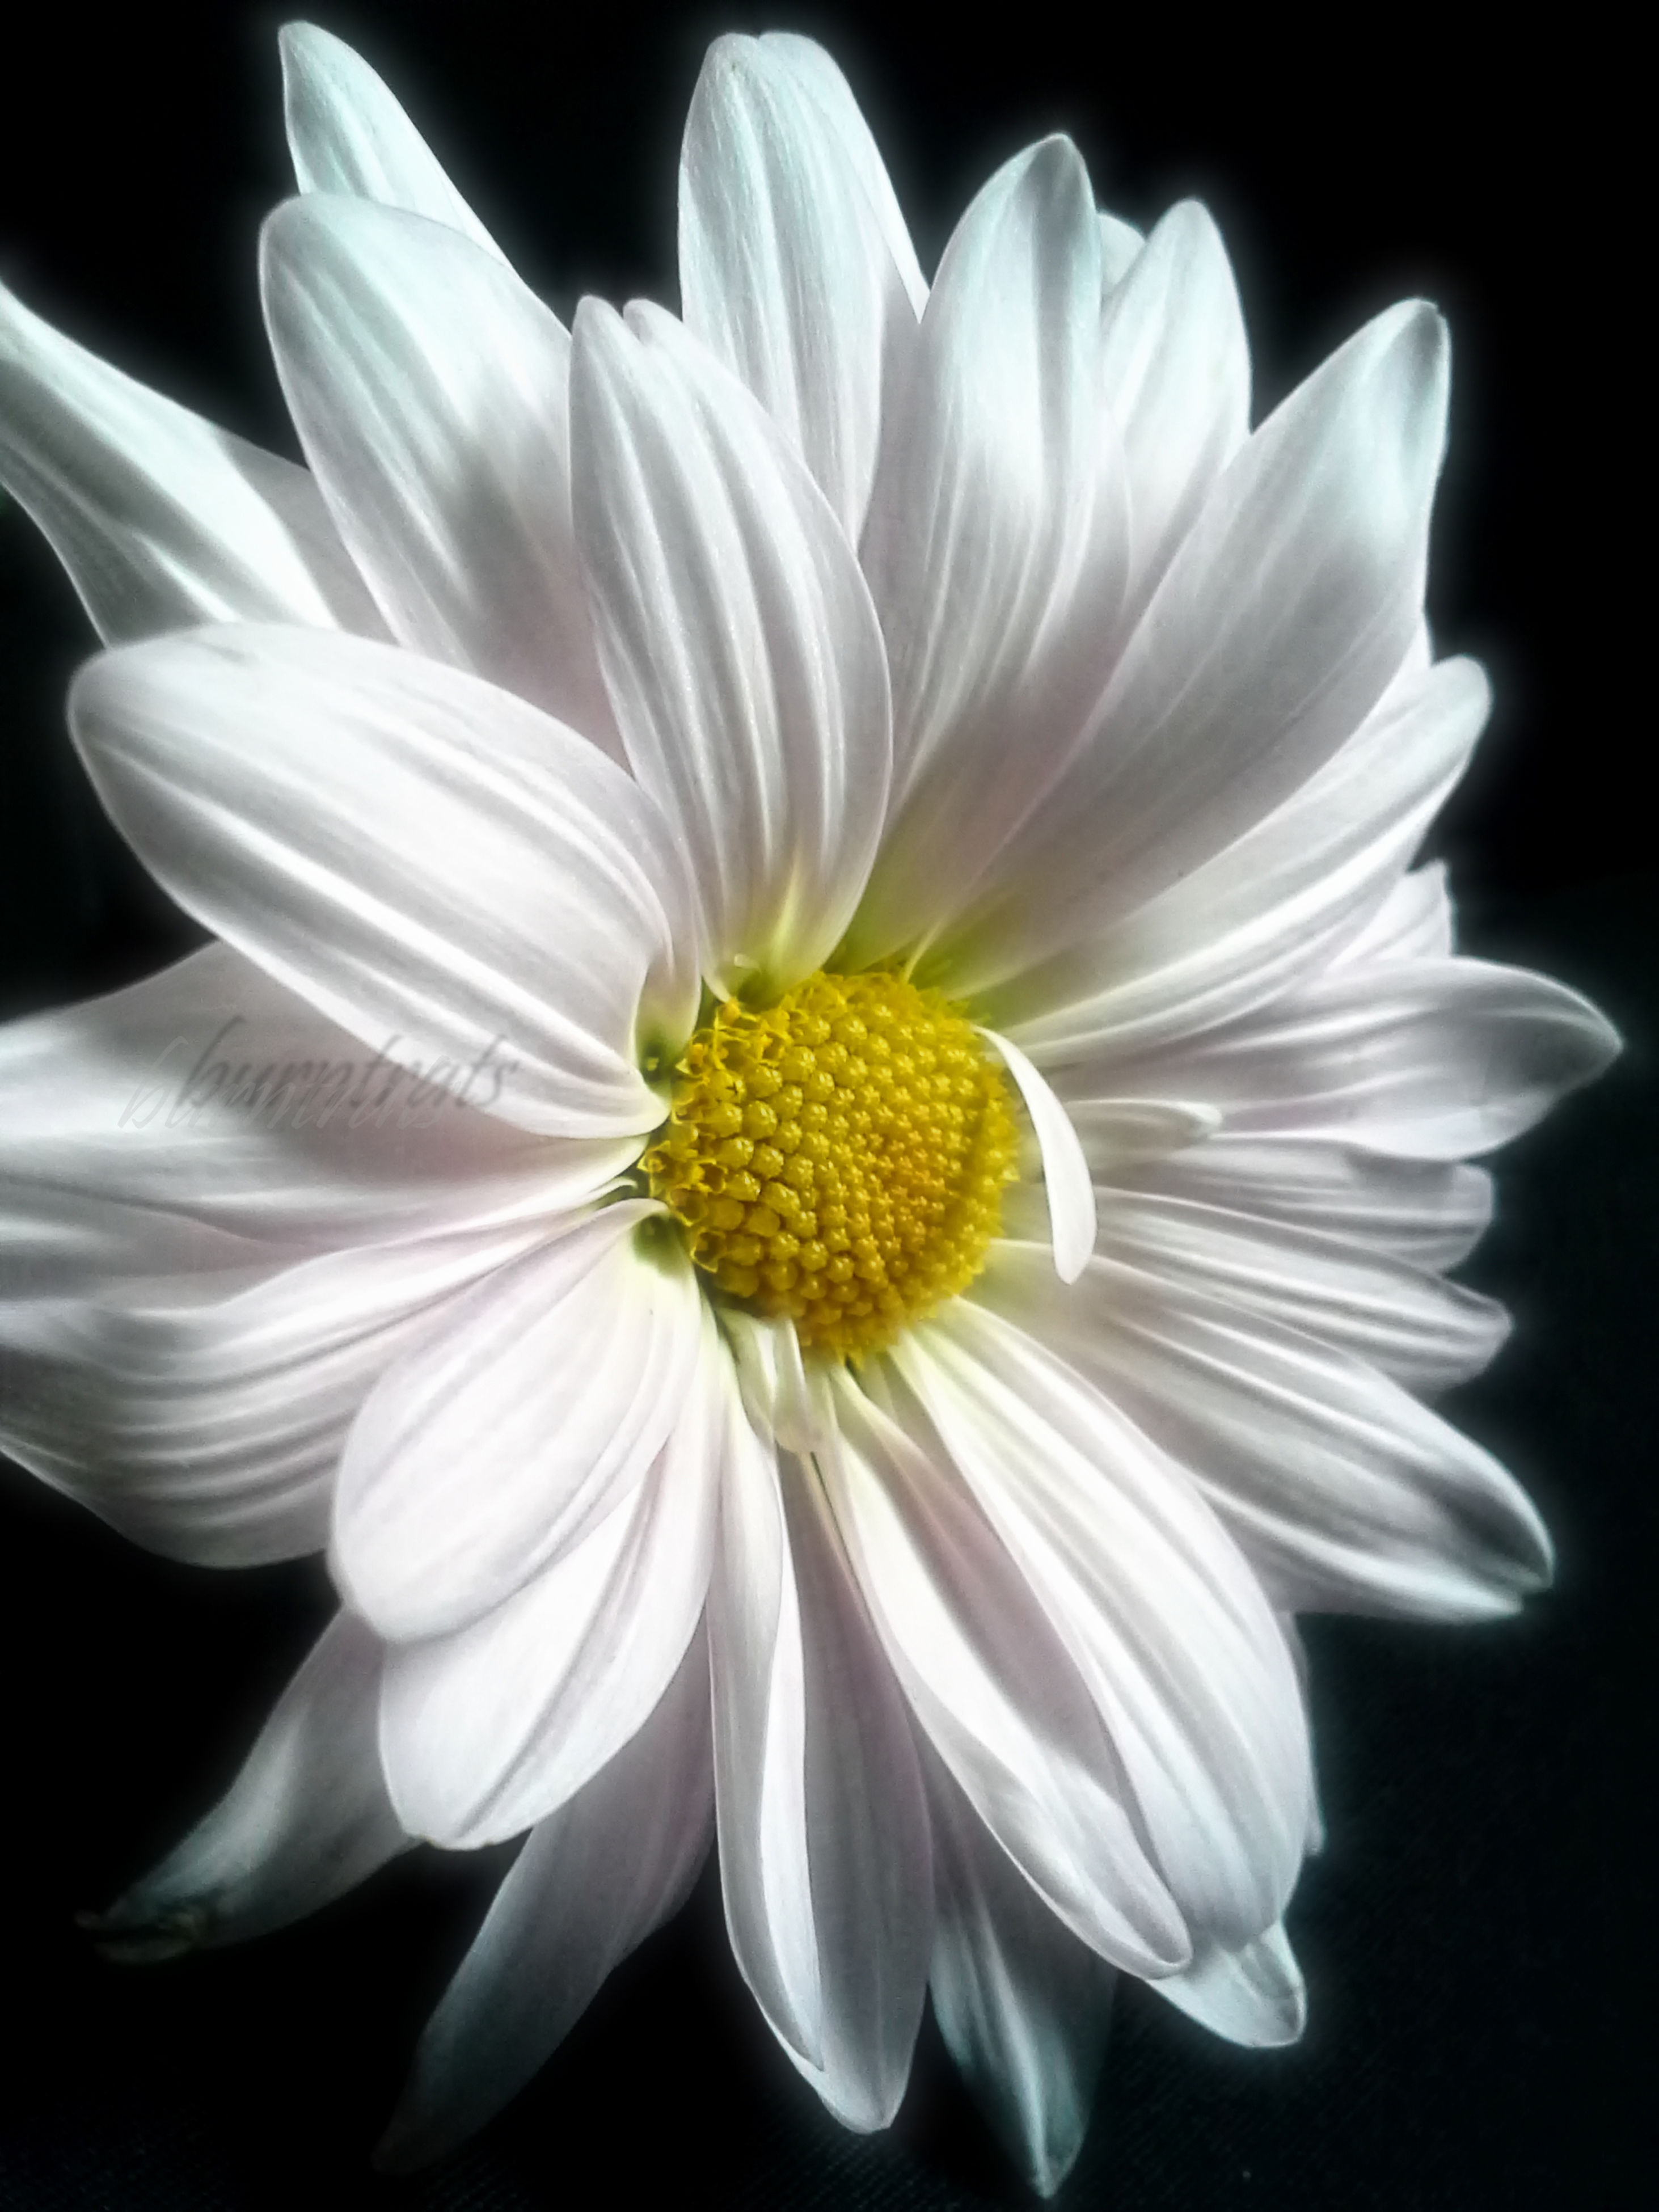 flower, petal, freshness, flower head, fragility, white color, beauty in nature, black background, studio shot, close-up, pollen, growth, single flower, nature, blooming, white, stamen, daisy, in bloom, blossom